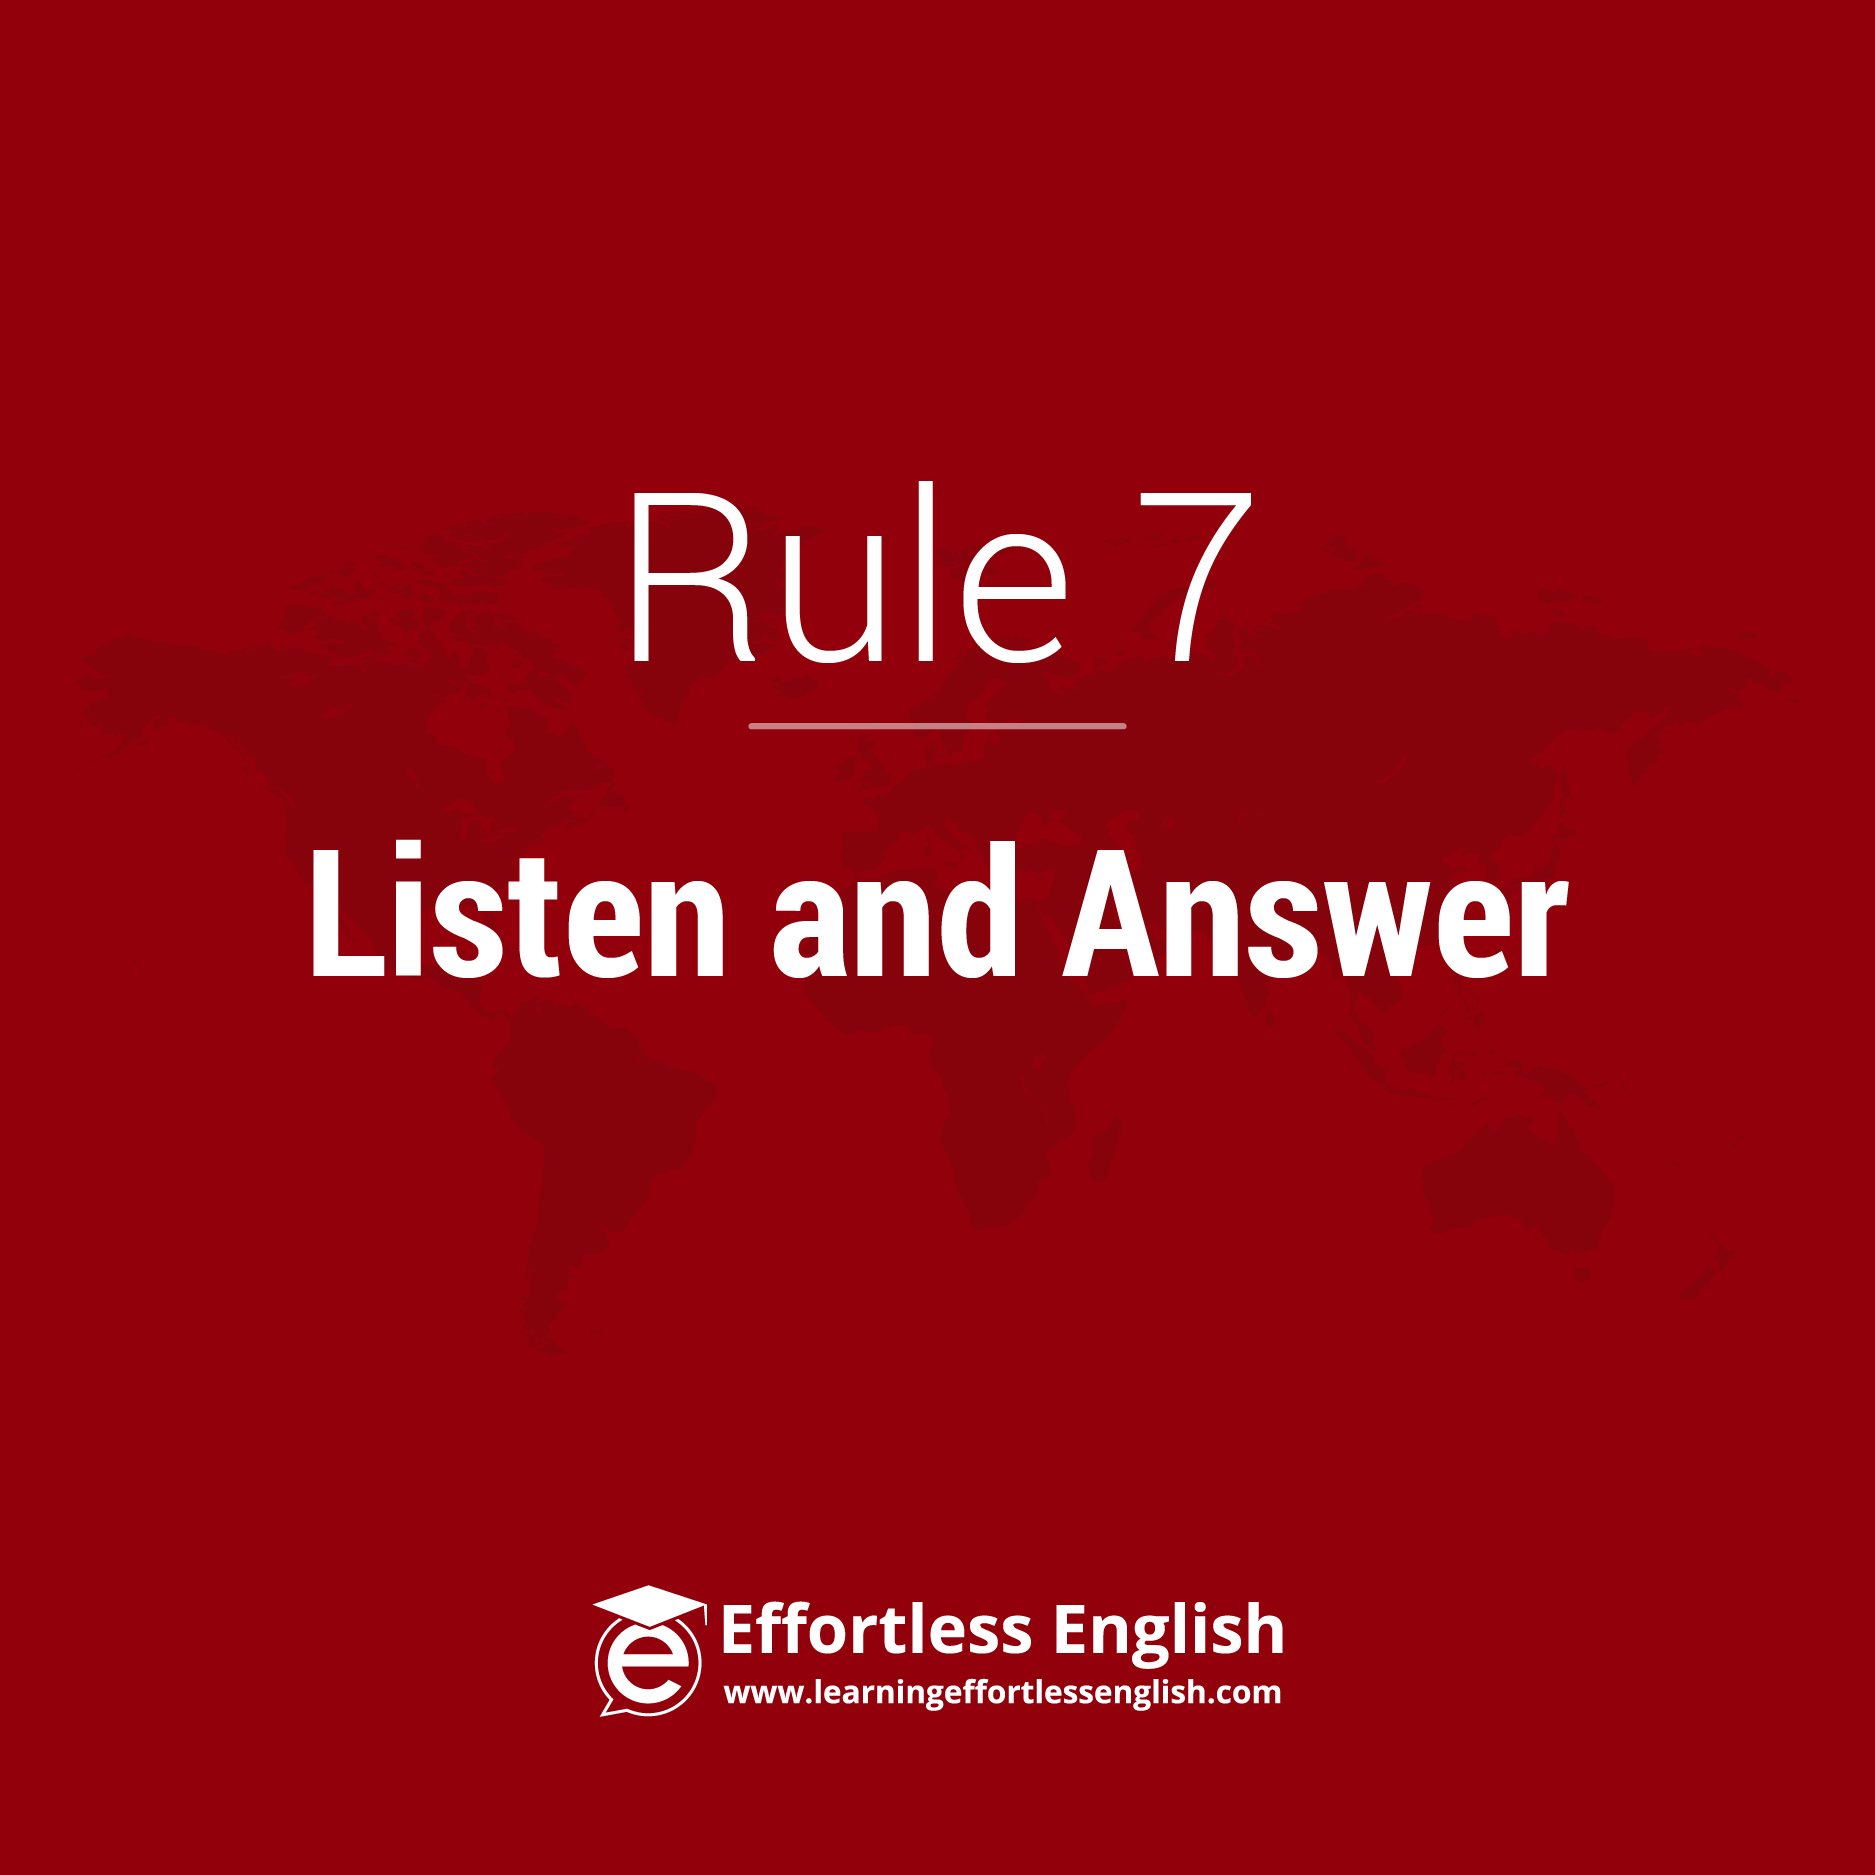 Rule 7: Listen and Answer, not Listen and Repeat